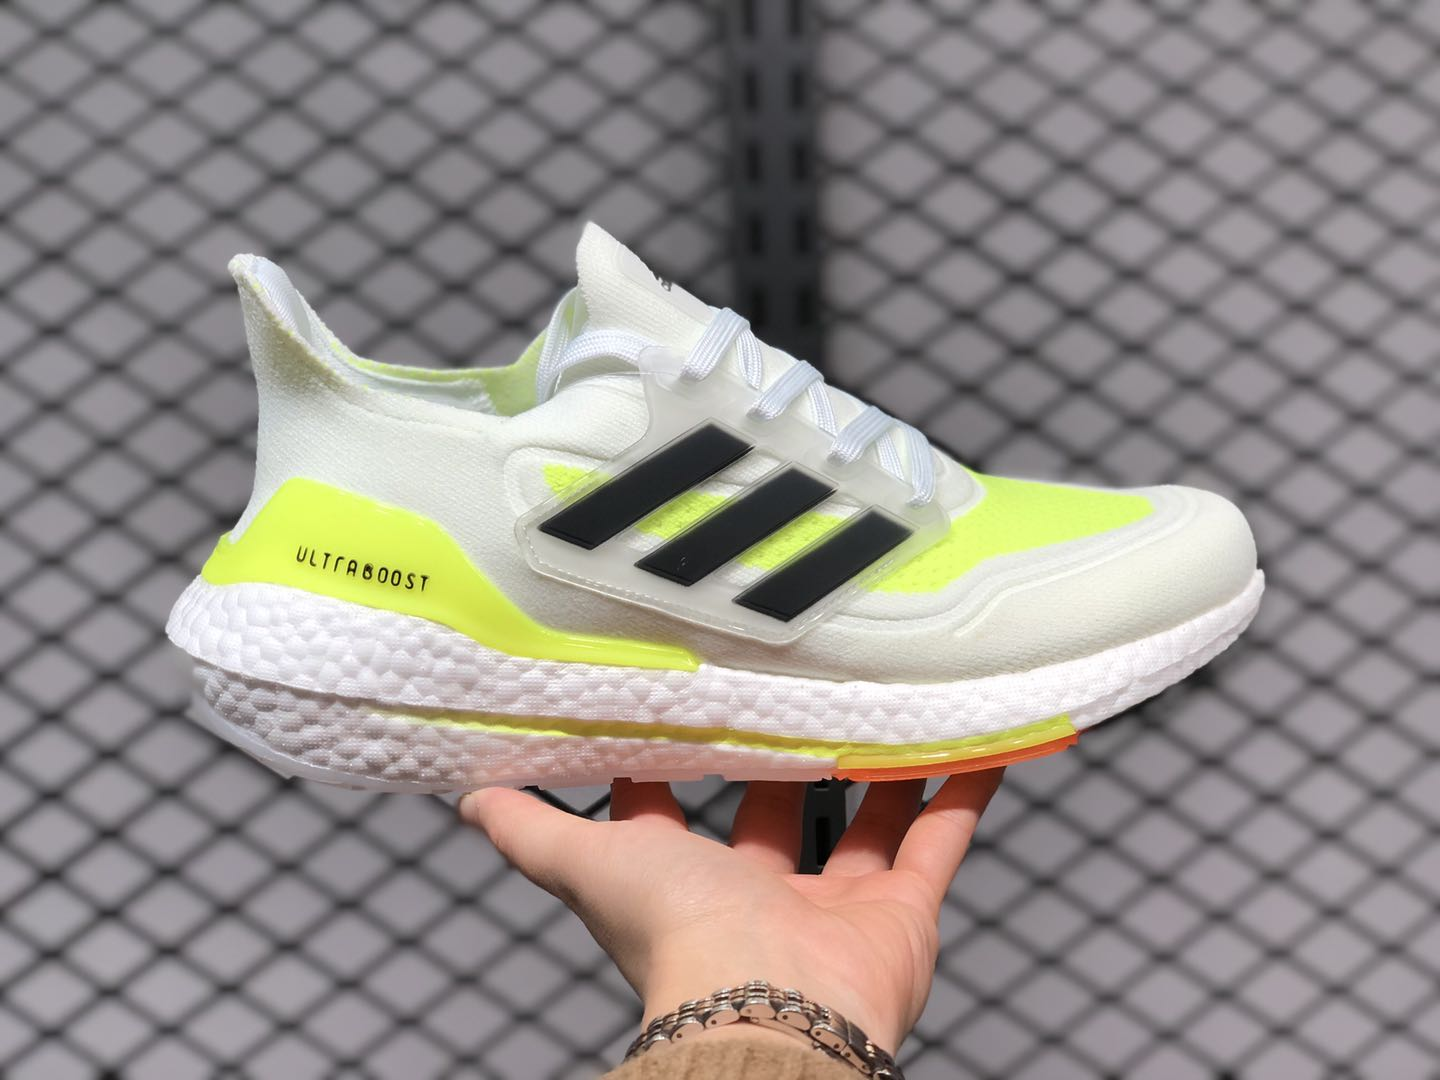 A merced de Resistente Burlas  Adidas Ultra Boost 2021 White/Yellow-Black For Sale FY0377 | Sneakers Big  Sale